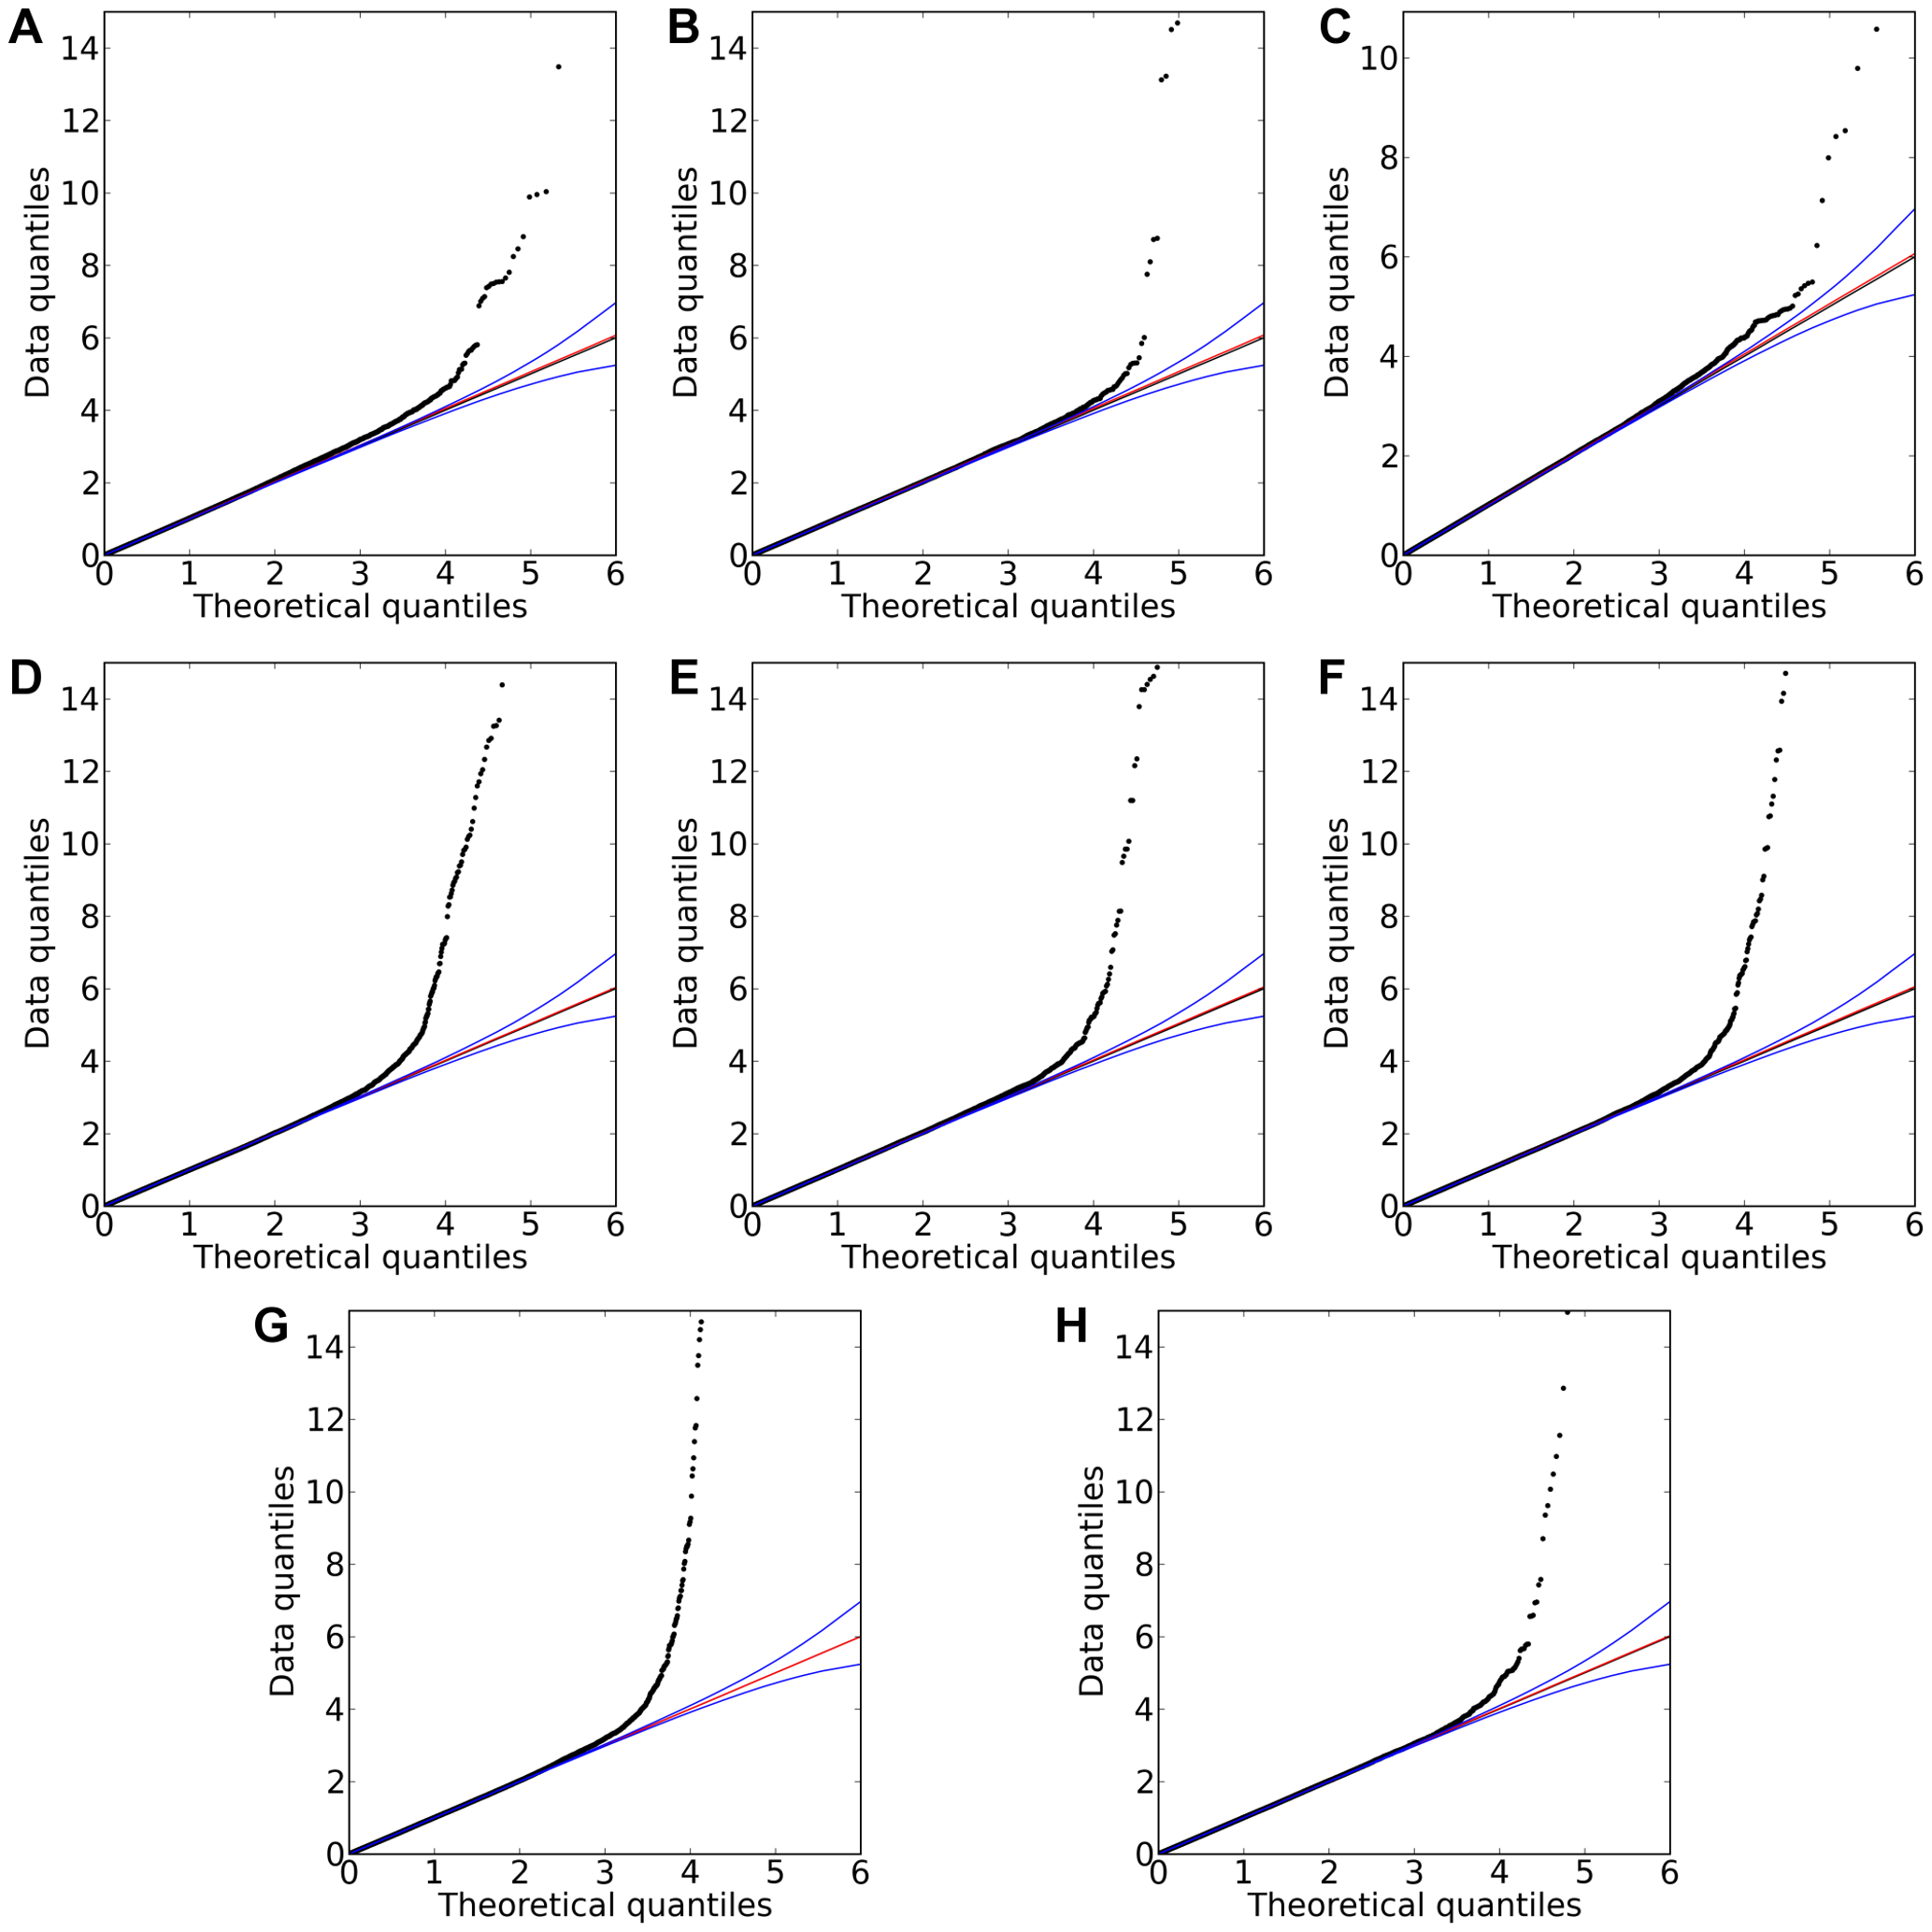 Quantile-quantile plots for new associations and replications.